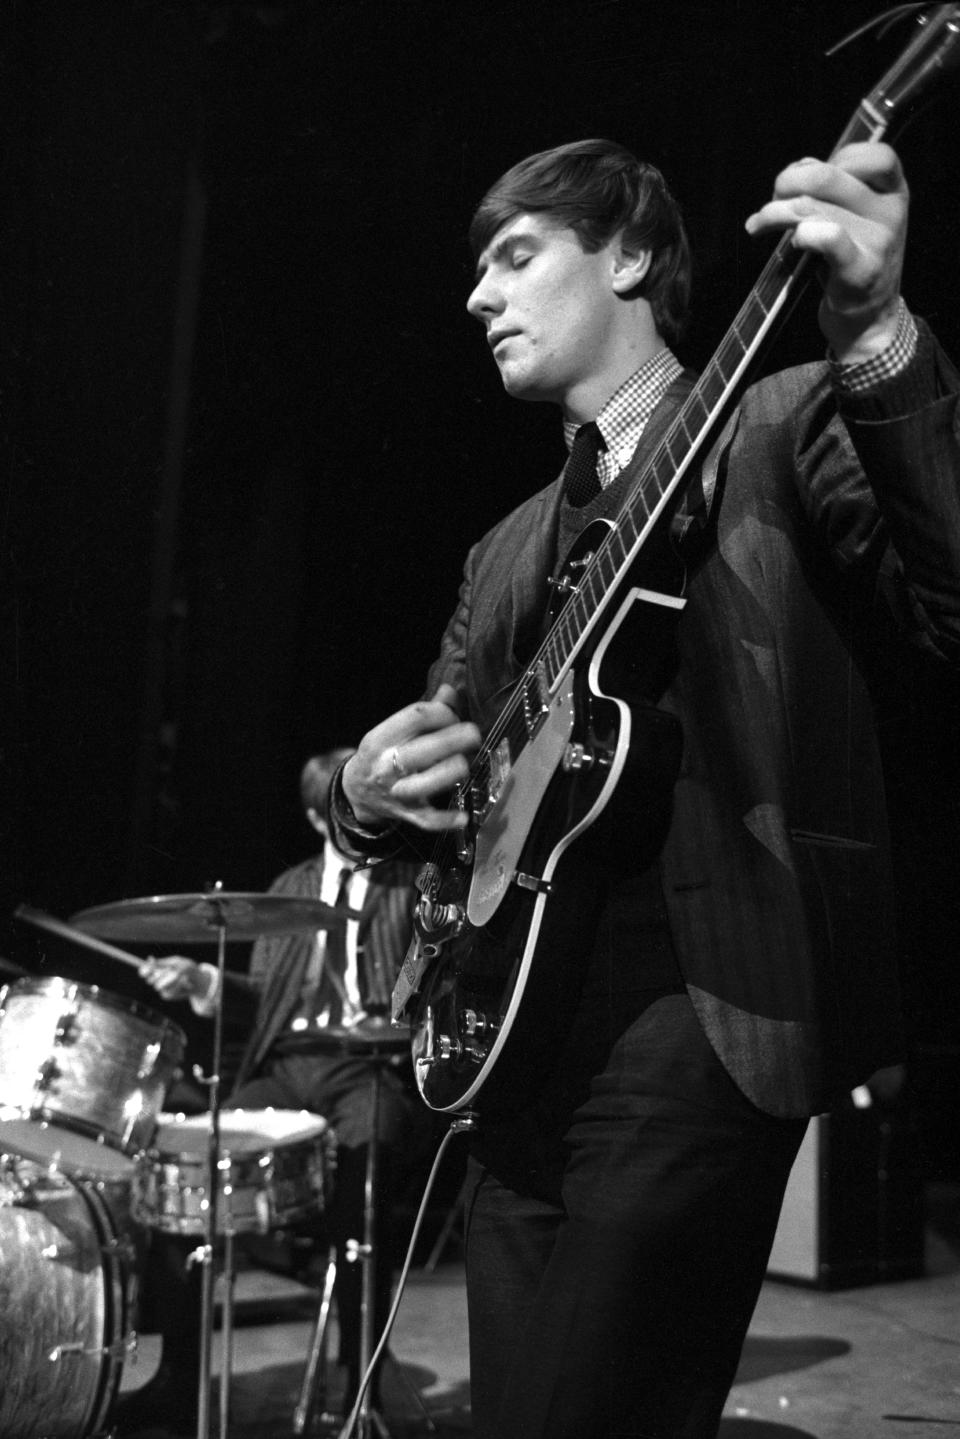 Hilton Valentine performing with the animals in 1964